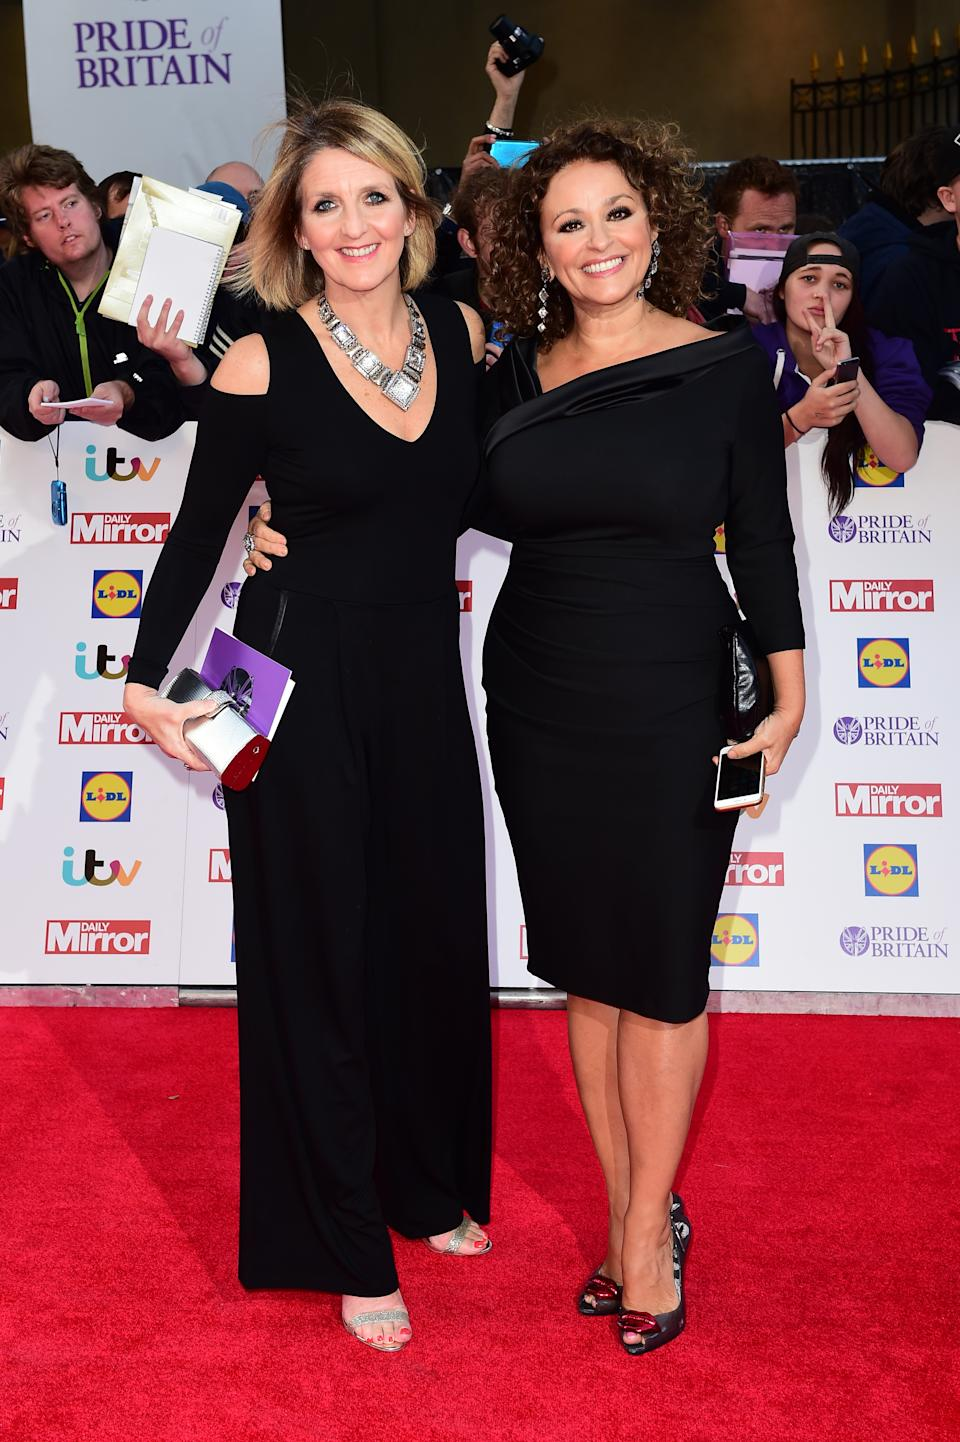 Kaye Adams (left) and Nadia Sawalha (right) arriving for The Pride of Britain Awards 2015, at Grosvenor House, Park Lane, London. PRESS ASSOCIATION Photo. Picture date: Monday September 28, 2015. See PA story Pride. Photo credit should read: Ian West/PA Wire